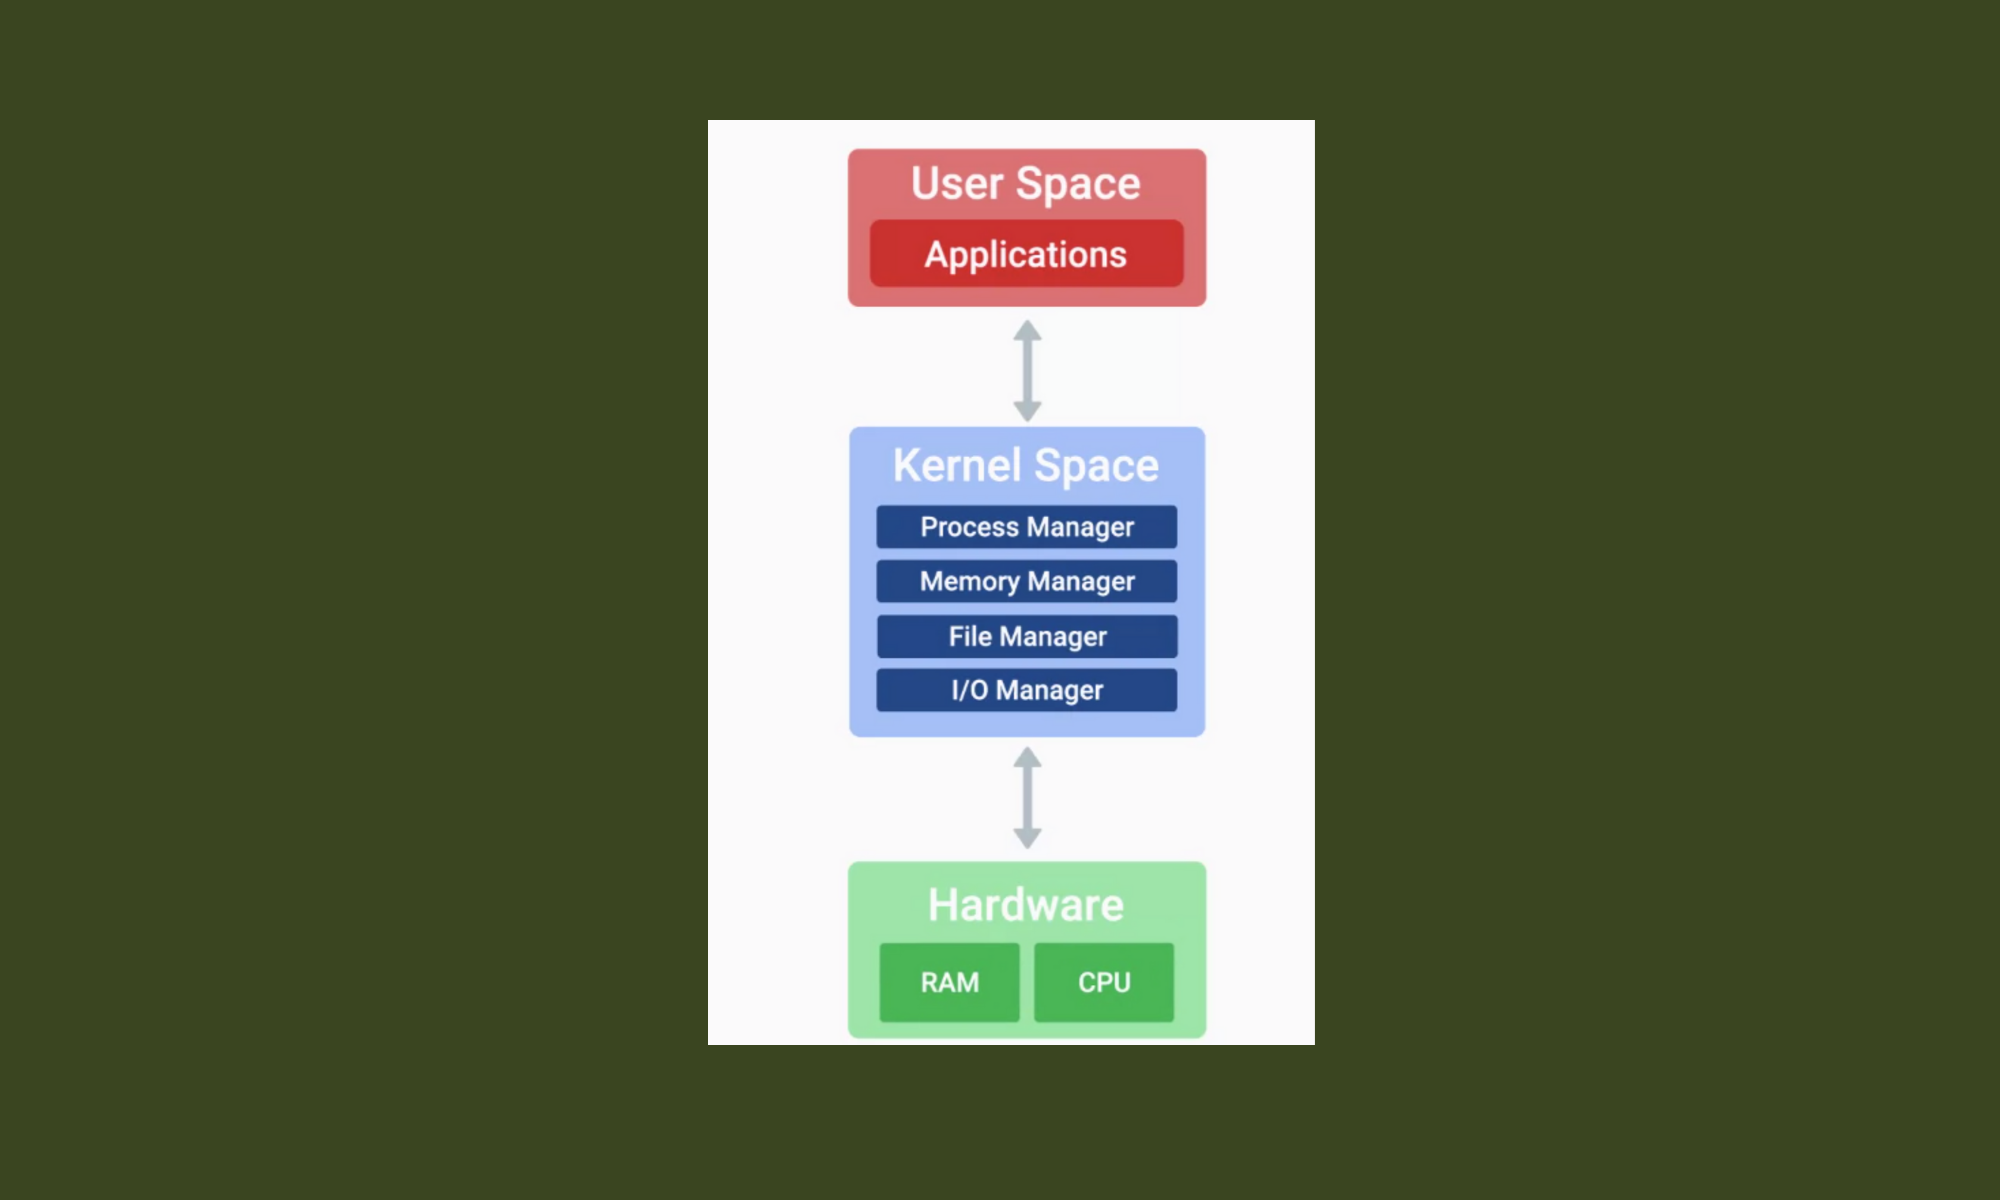 The Kernel Space